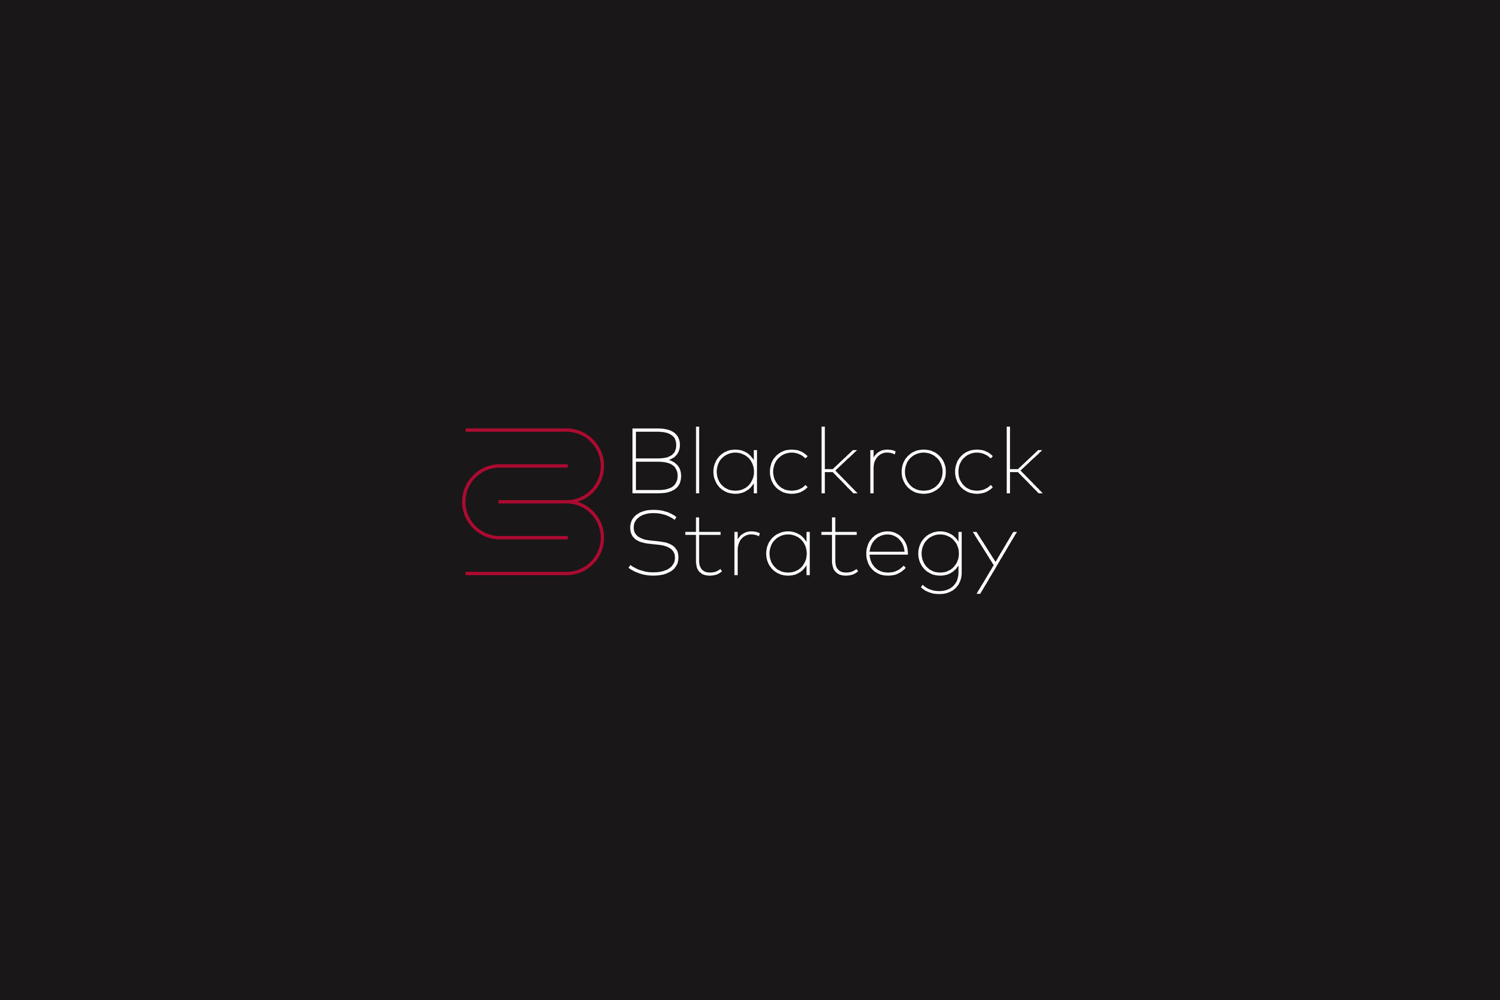 Cover image: Blackrock Strategy